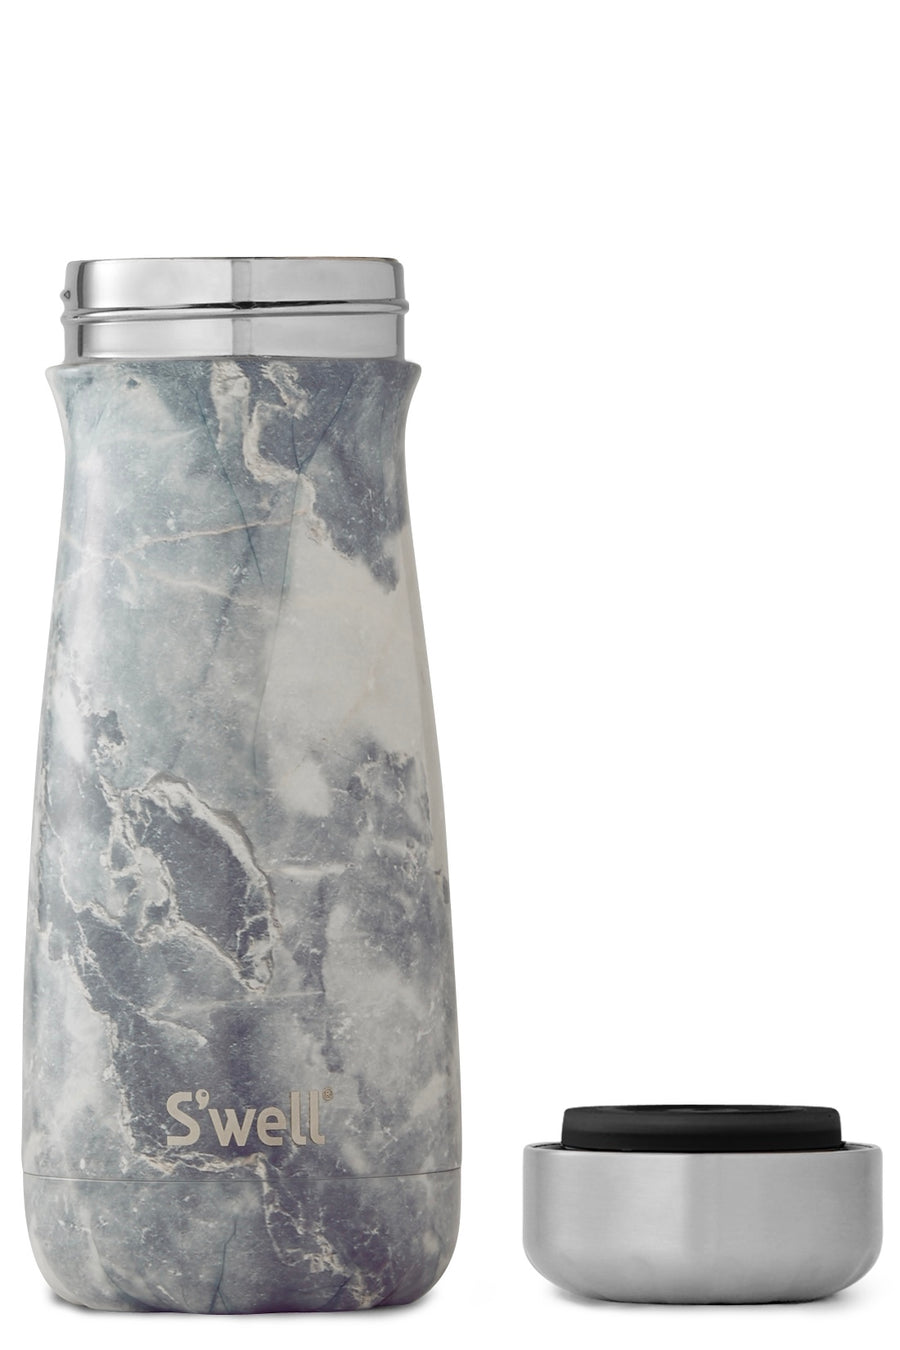 S'well Wide Mouth Traveler Insulated Thermos Blue Granite 16OZ